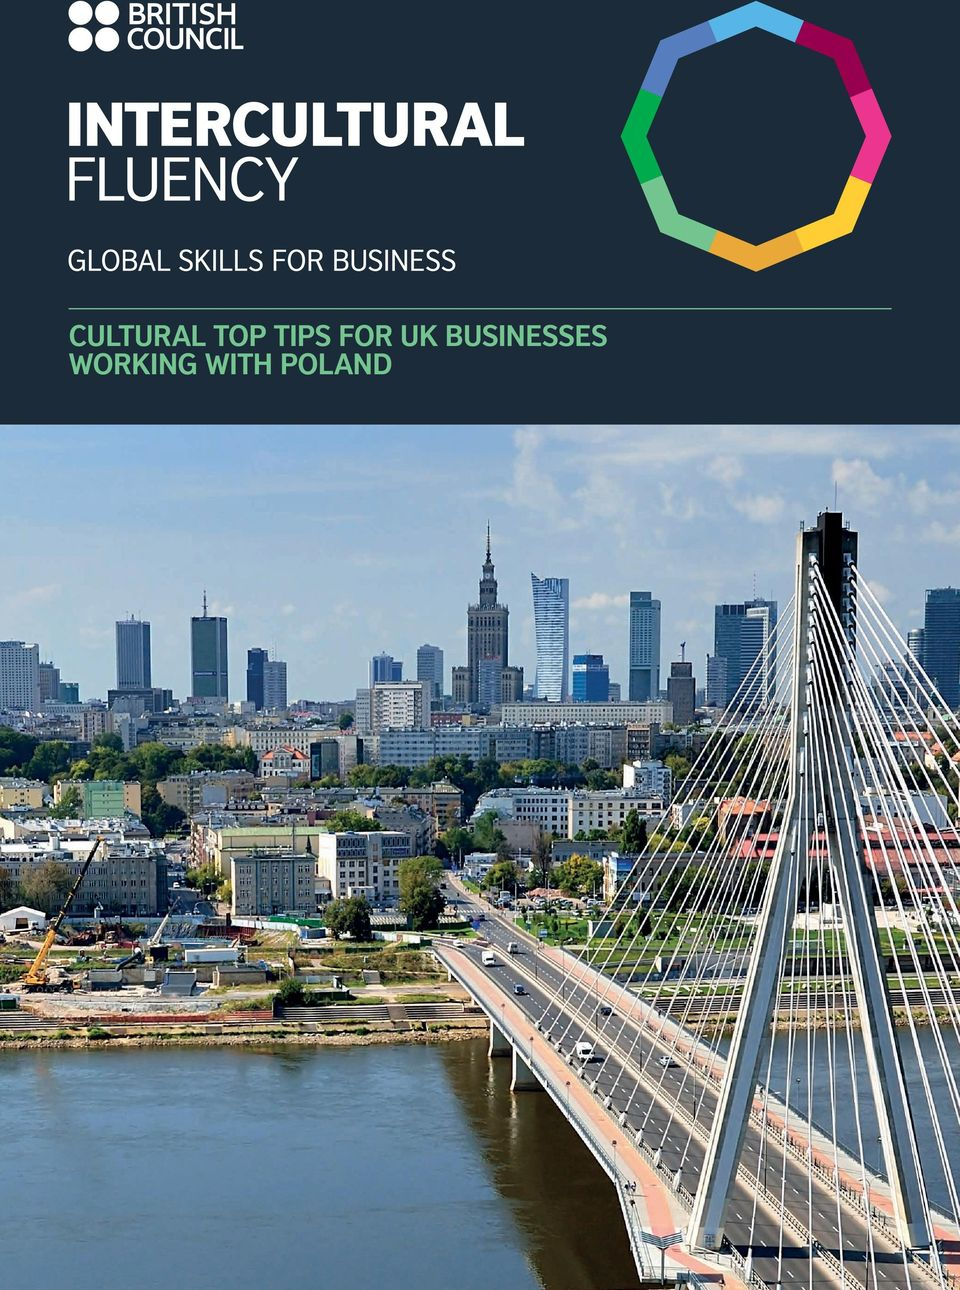 Cultural Top Tips for uk Businesses working with Poland - PDF